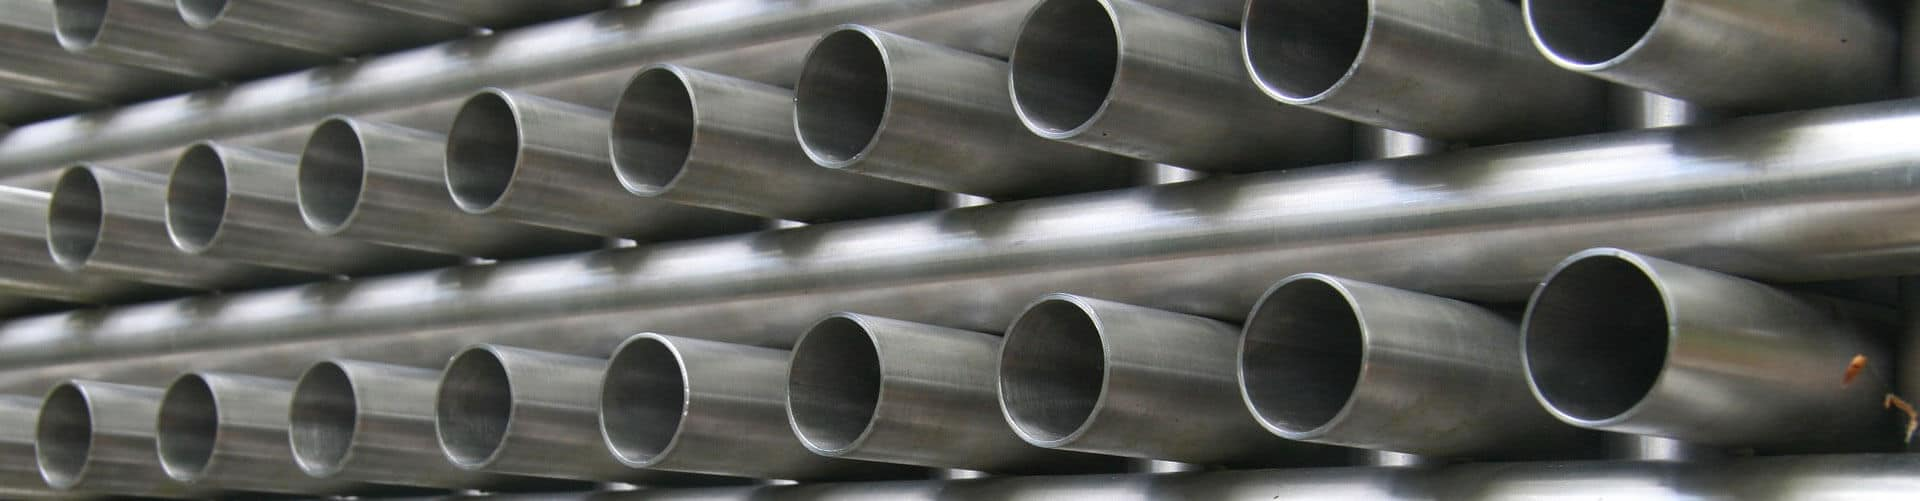 Hastelloy Alloy Pipe and Tube